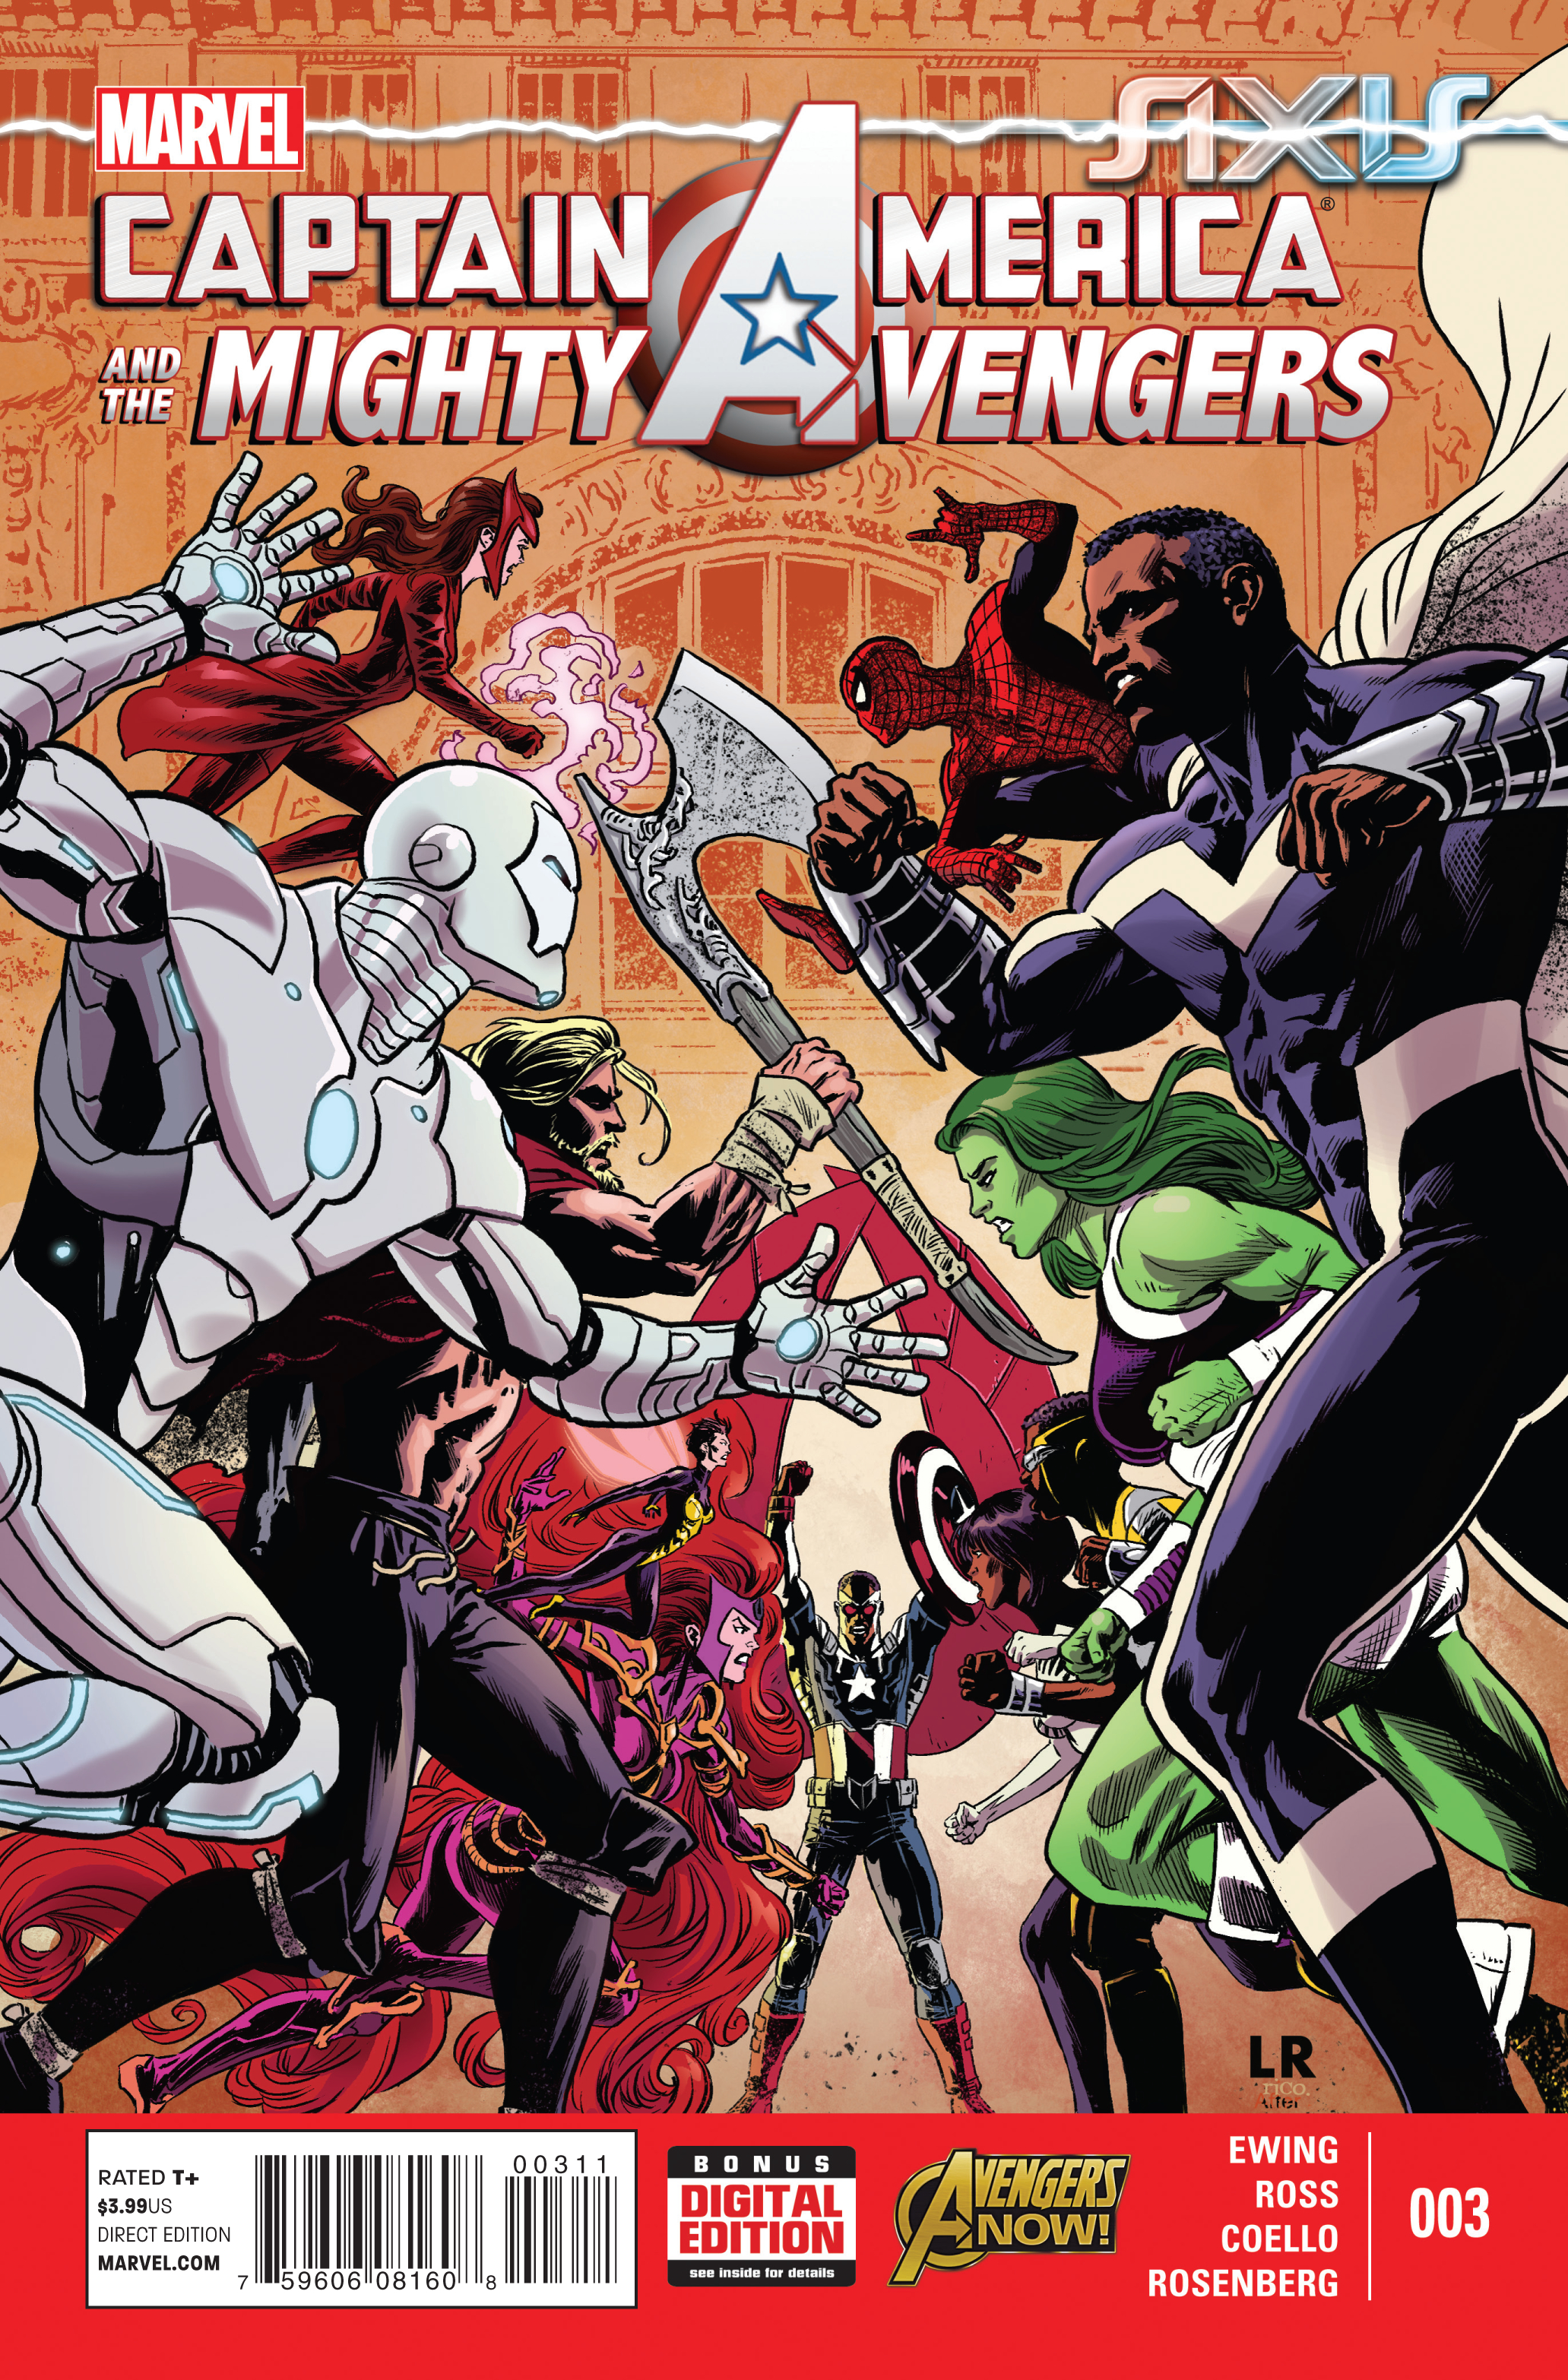 CAPTAIN AMERICA AND MIGHTY AVENGERS #3 AXIS